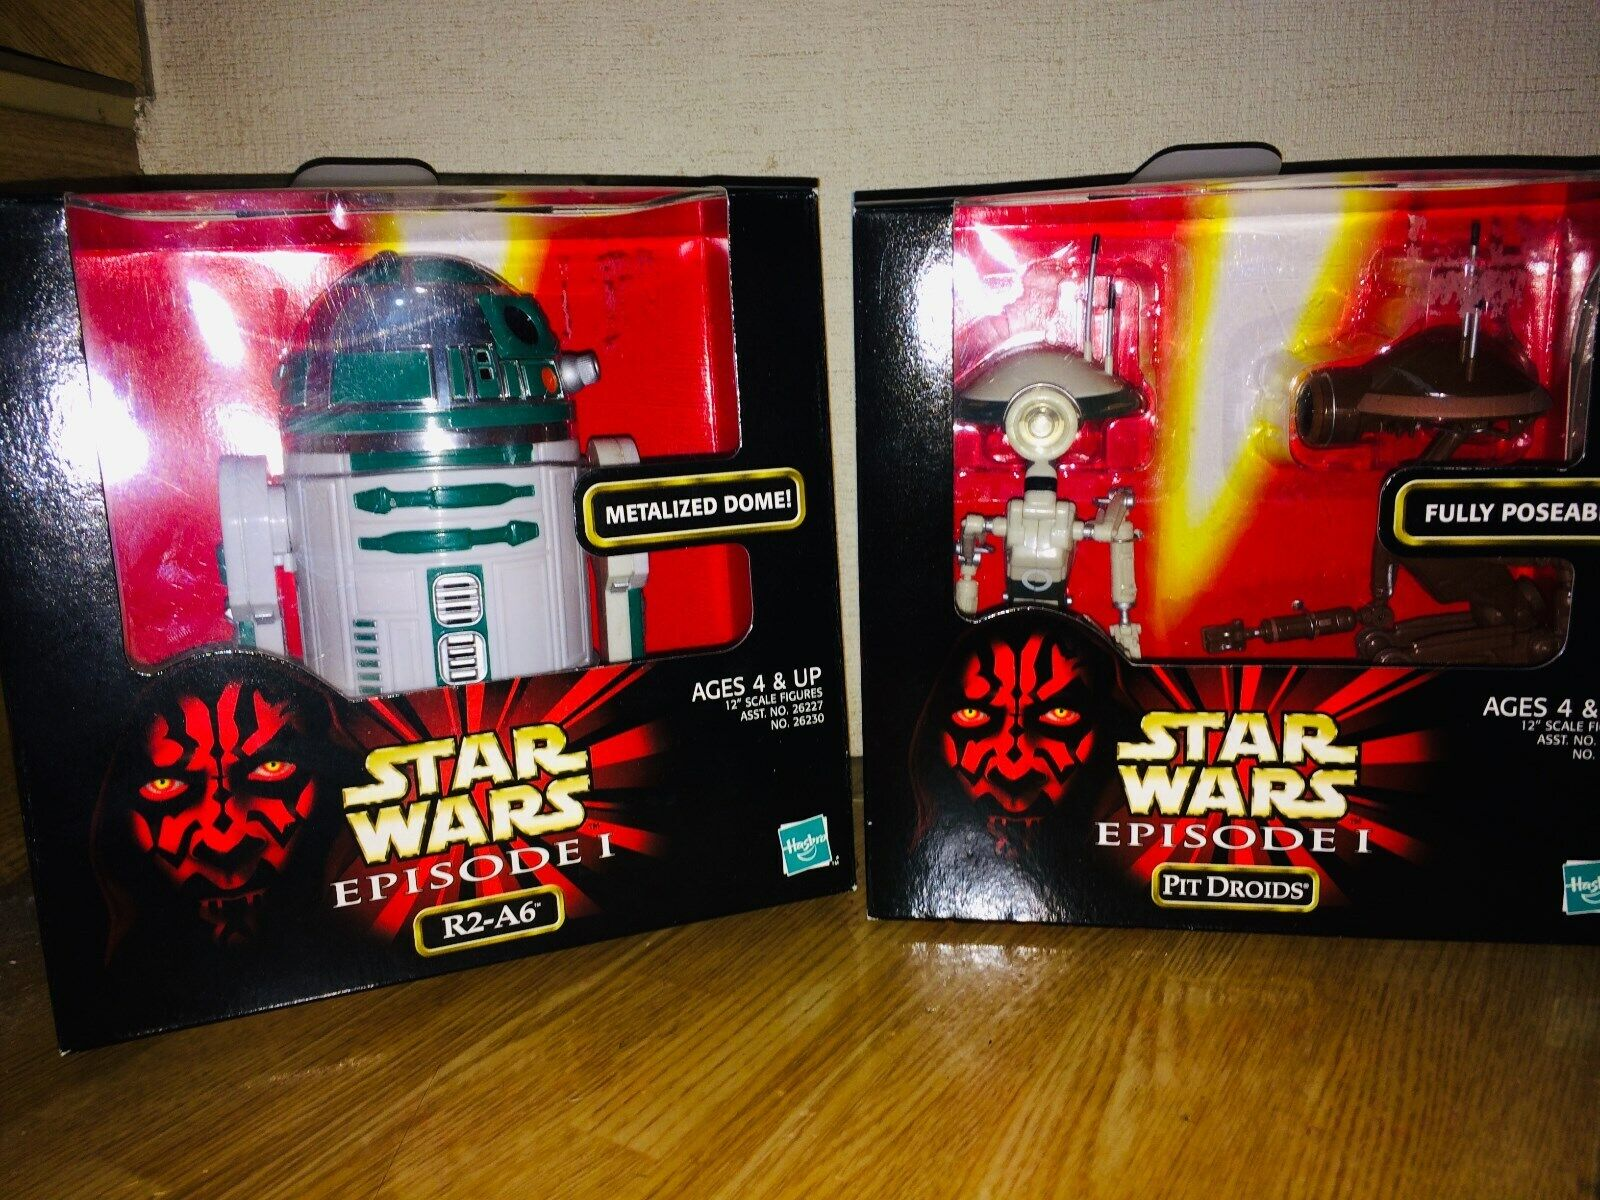 Hasbro Star Wars EPISODE 1 EP1 ACTION COLLECTION R2-D2 R2-A6 & PIT DROIDS